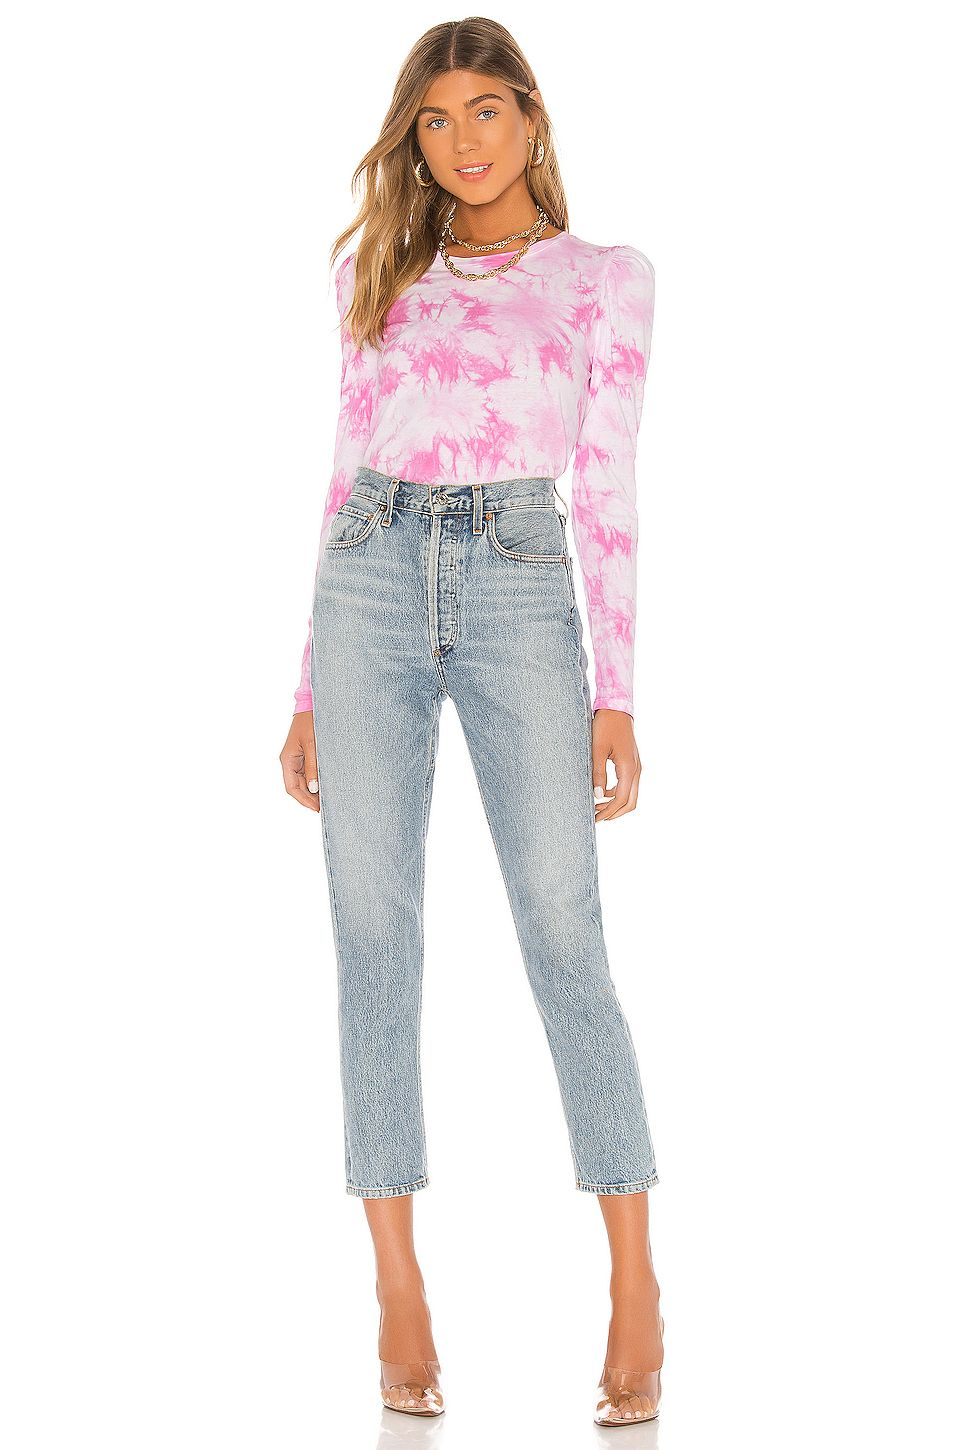 Generation Love Josephine Top in Pink & White, #sponsored, #affiliate, #Josephine, #White, #Pink, #Love